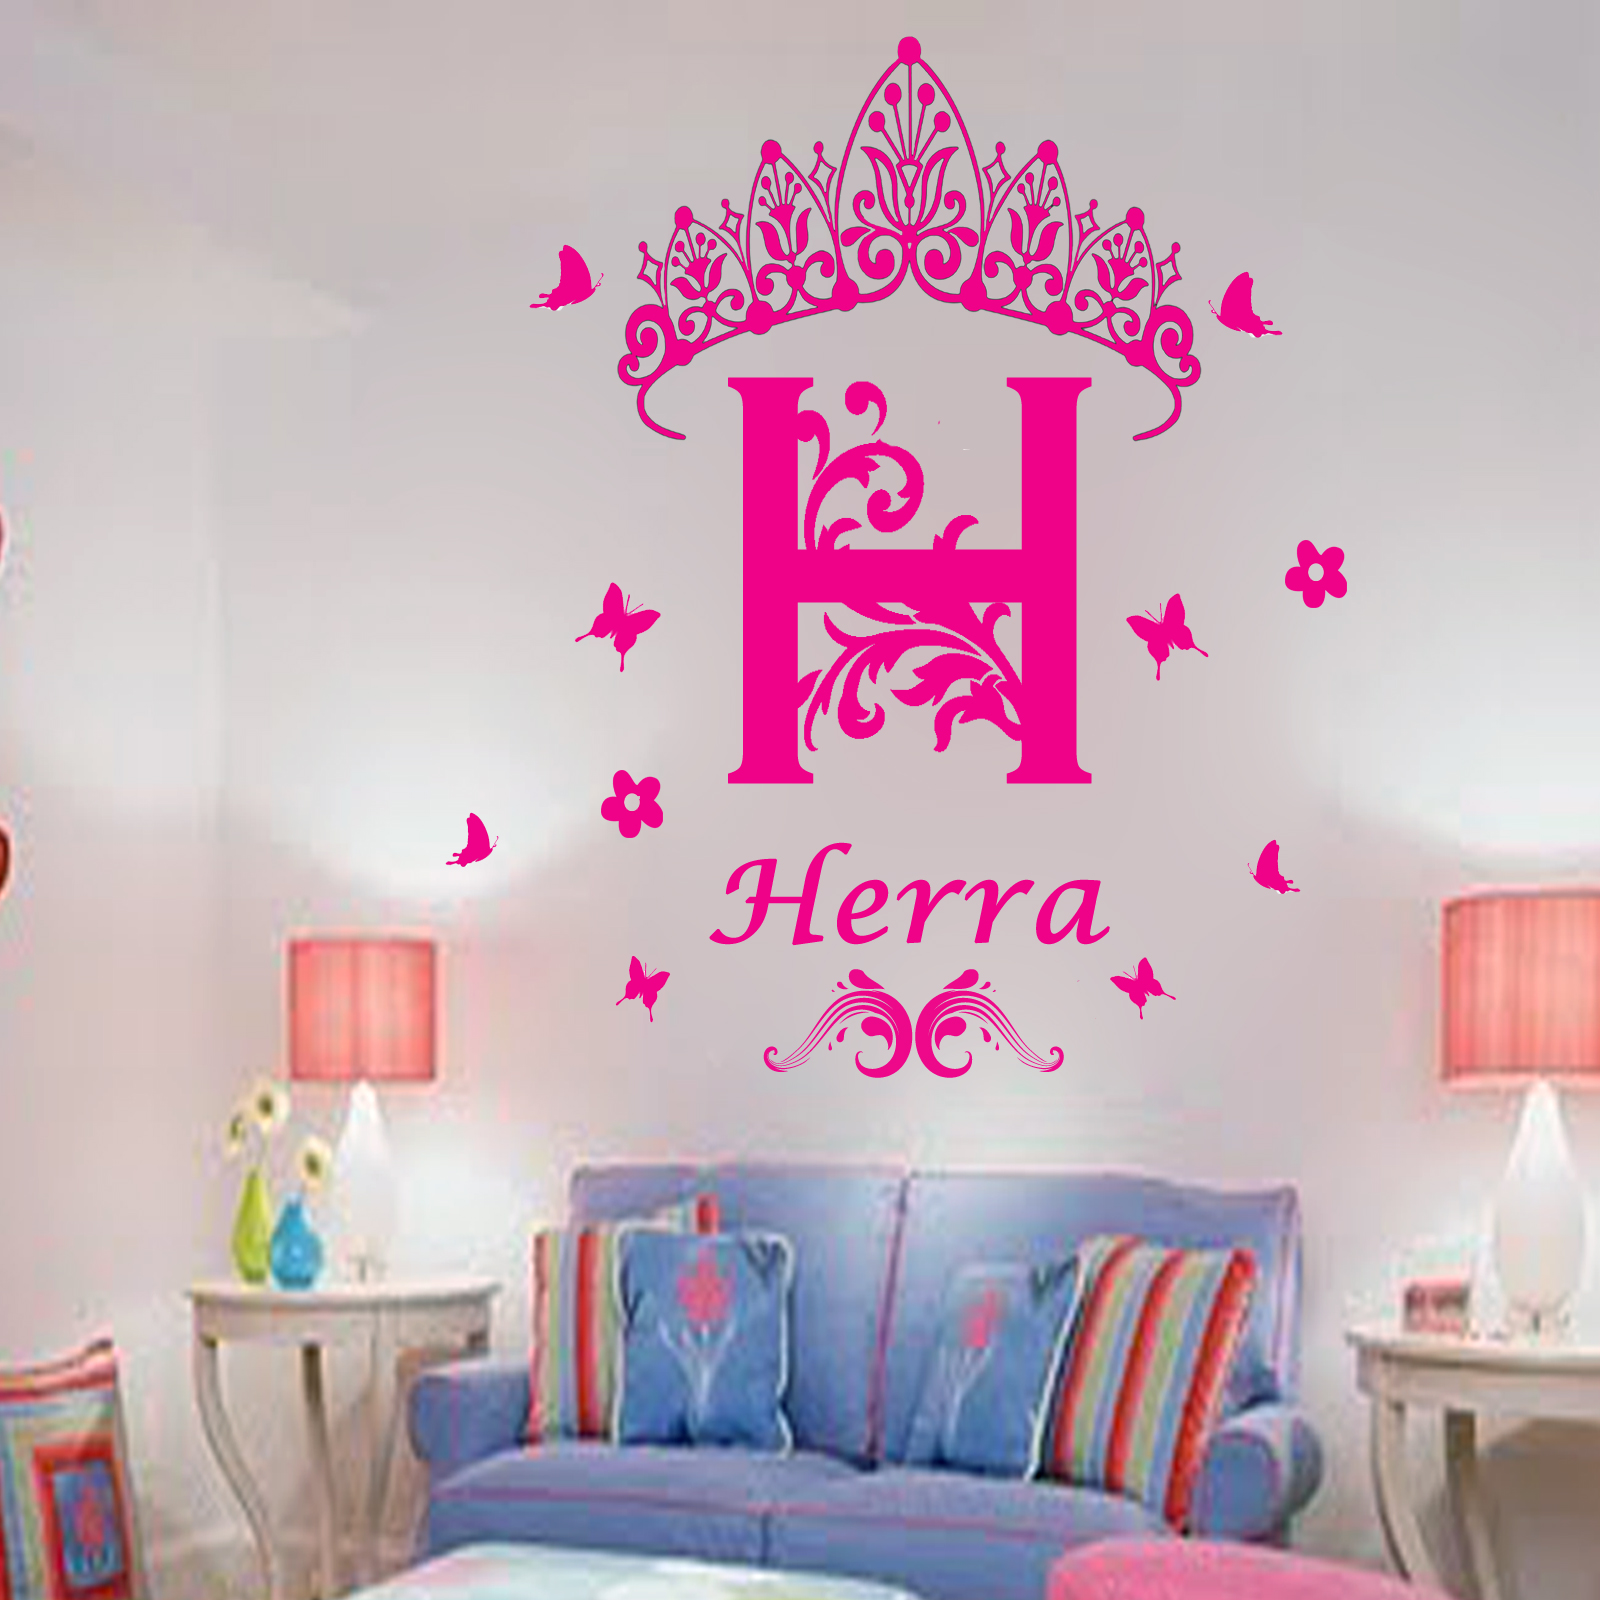 Personalized Vinyl Wall Stickers